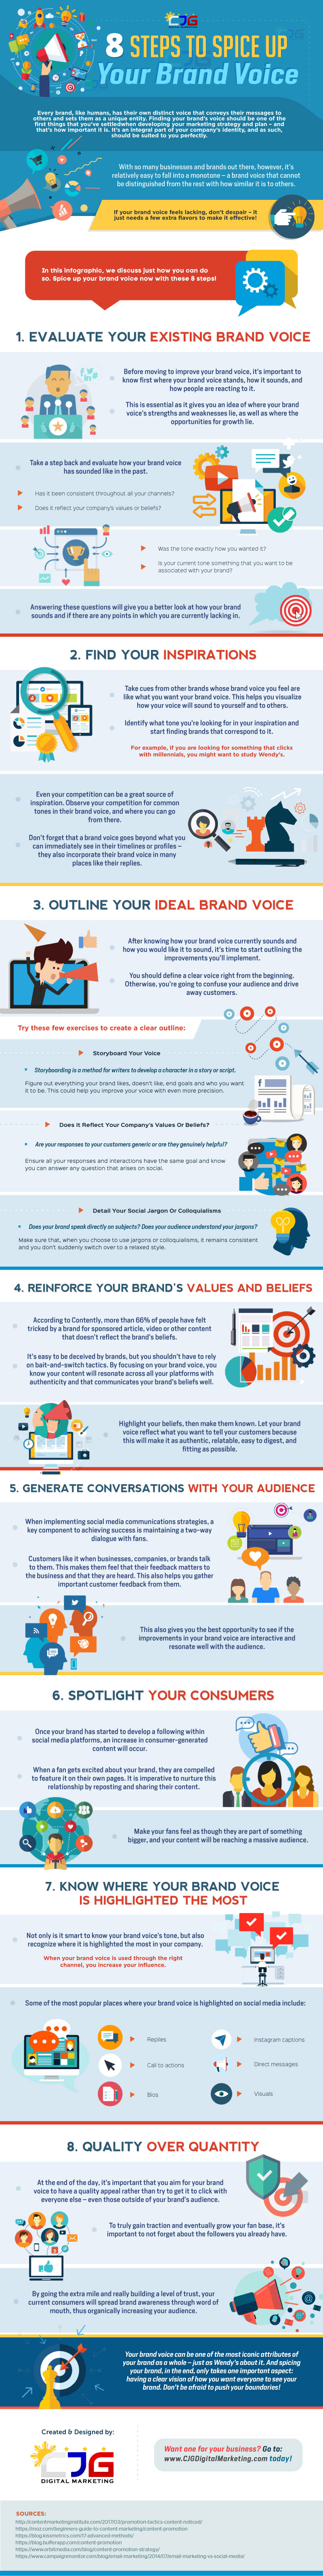 8 Steps to Spice Up Your Brand Voice